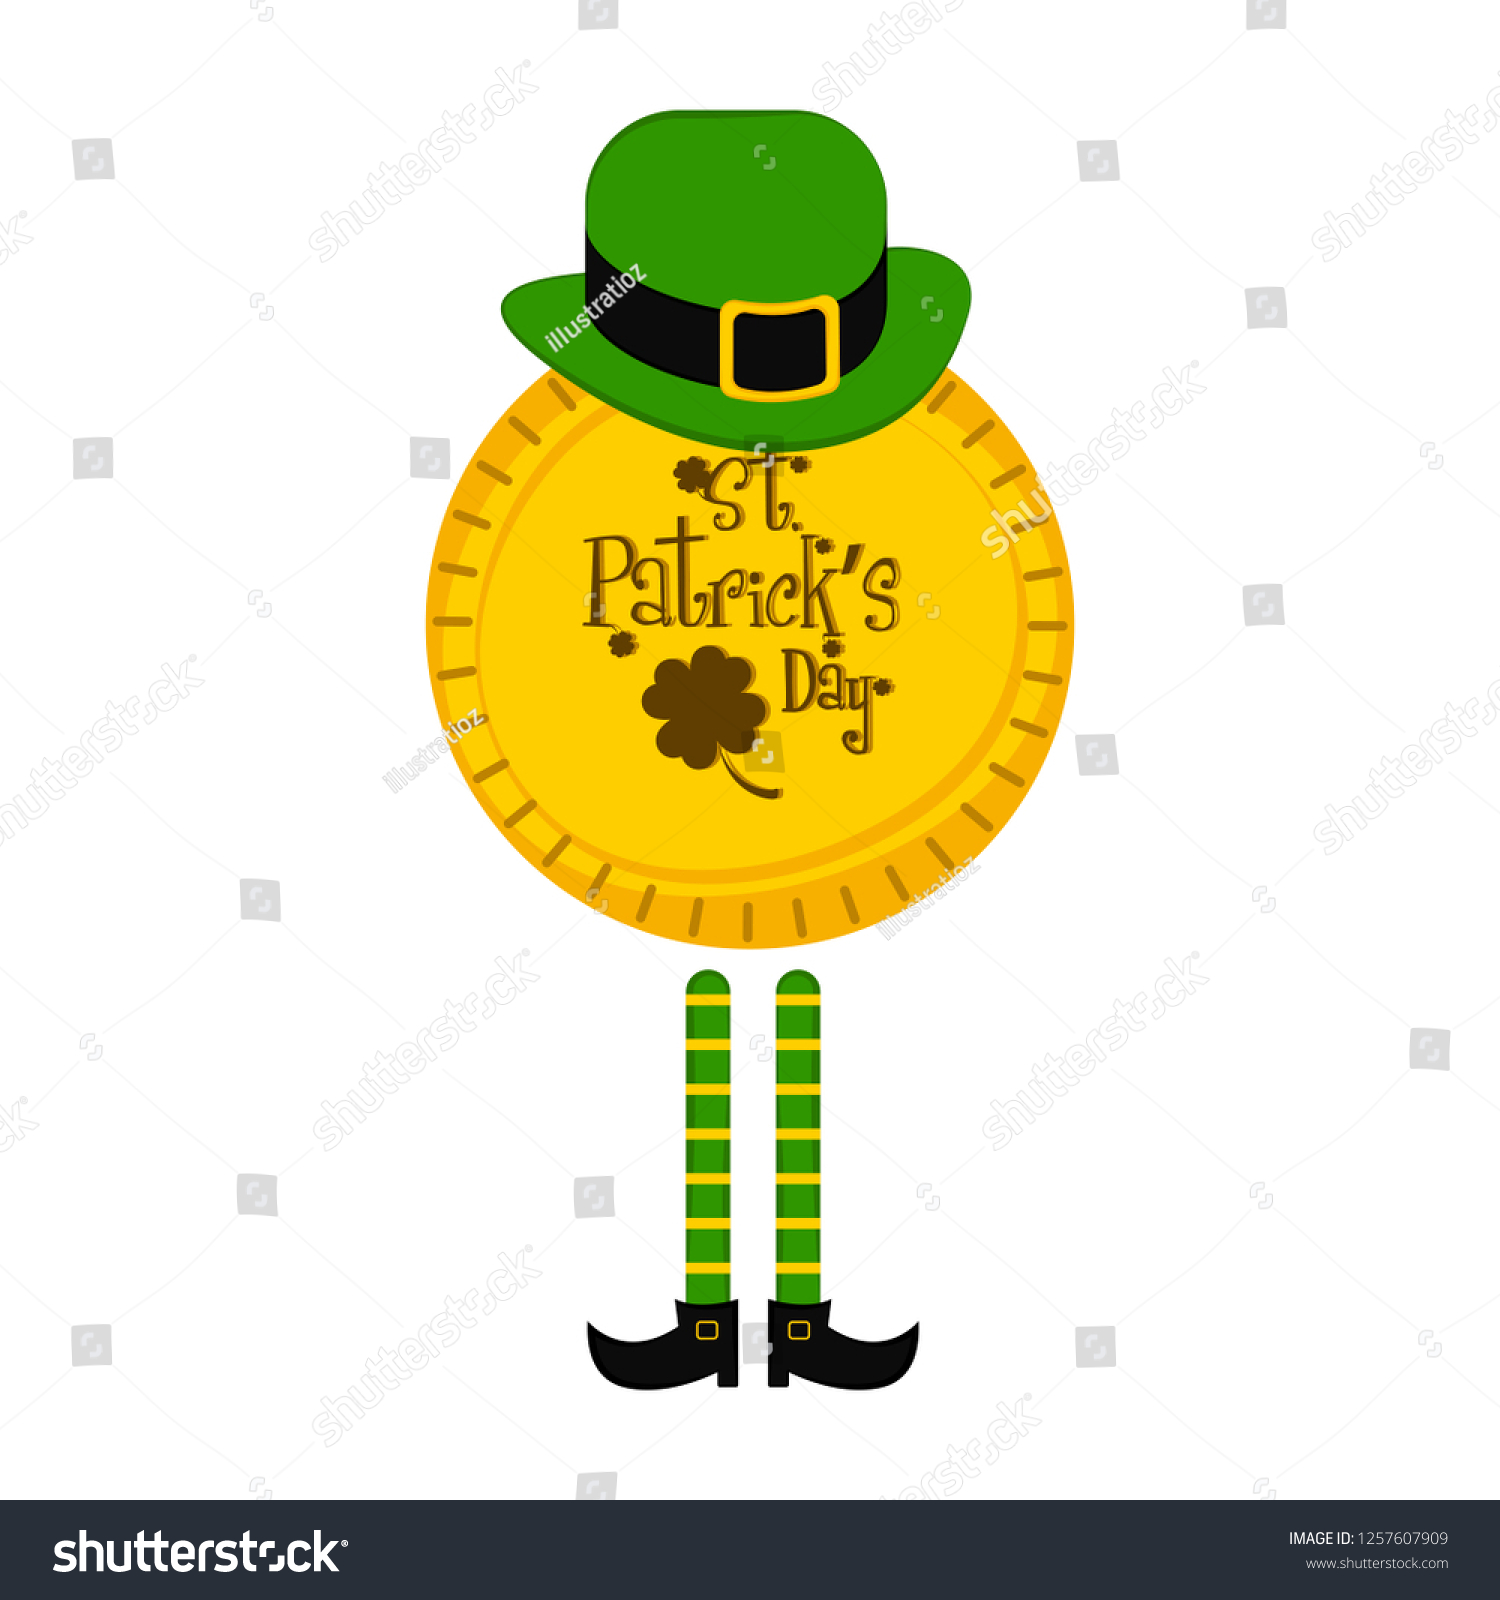 8381c8e6105 Saint patrick day golden coin with traditional irish hat and elf legs.  Vector illustration design